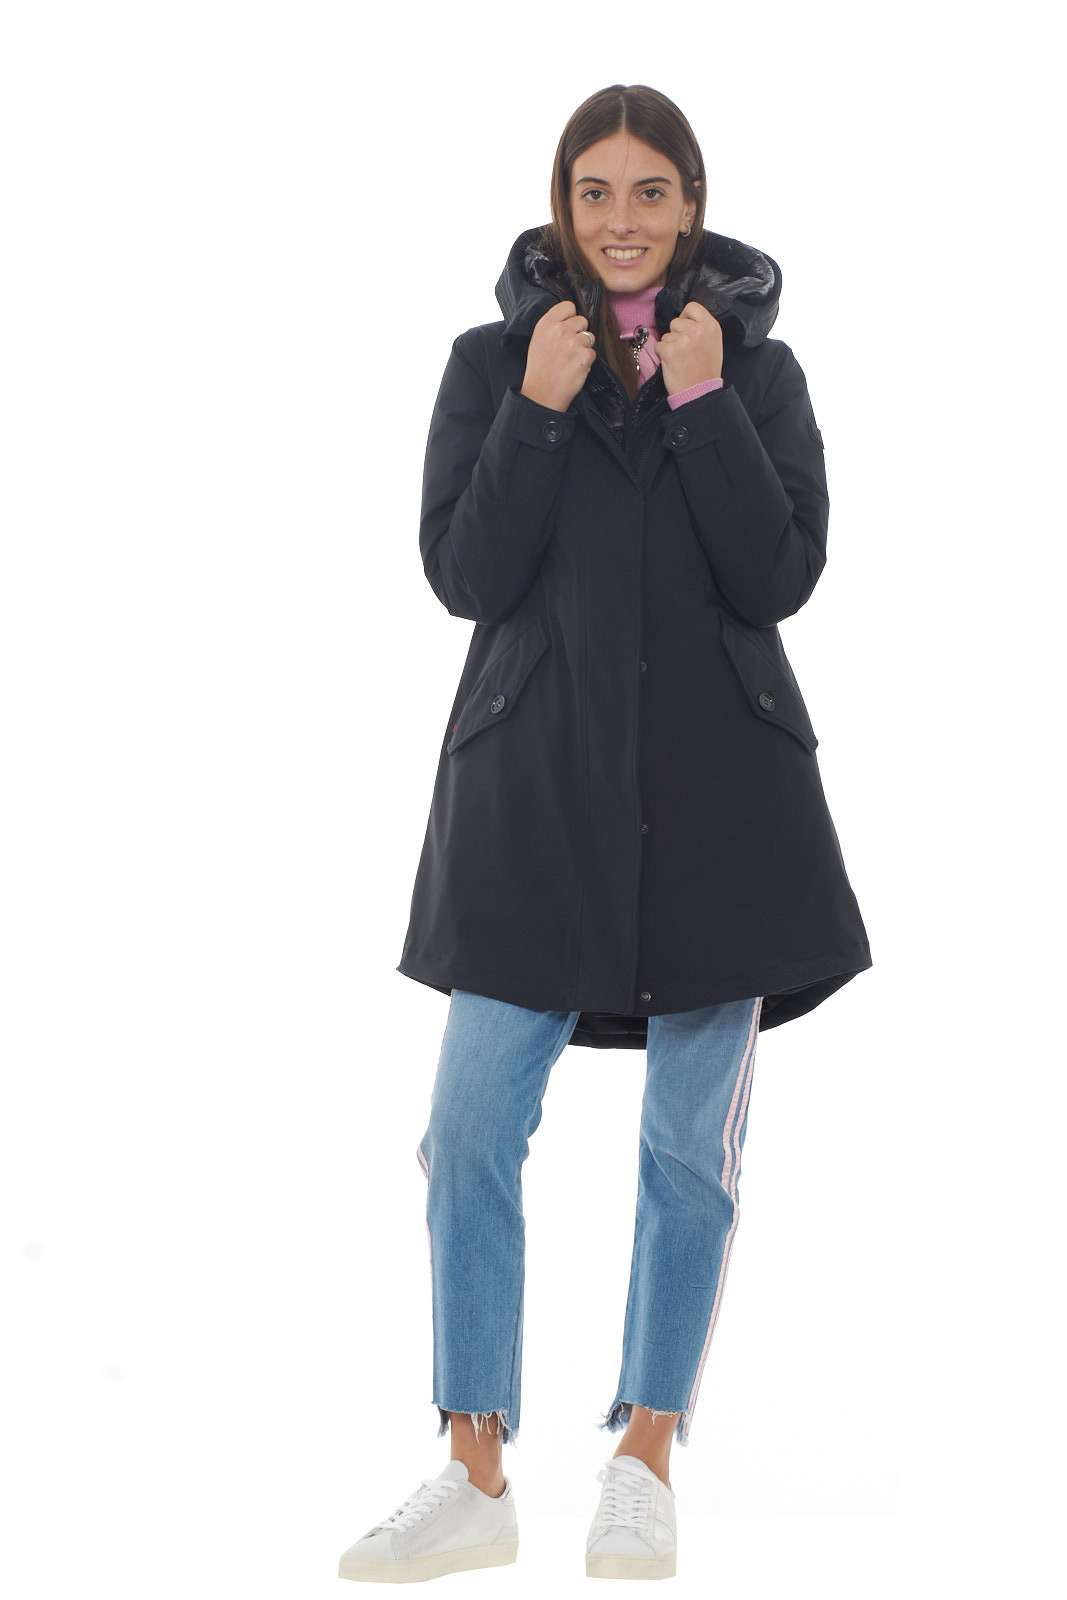 https://www.parmax.com/media/catalog/product/a/i/AI-outlet_parmax-parka-donna-Woolrich-WWCPS2785-D.jpg